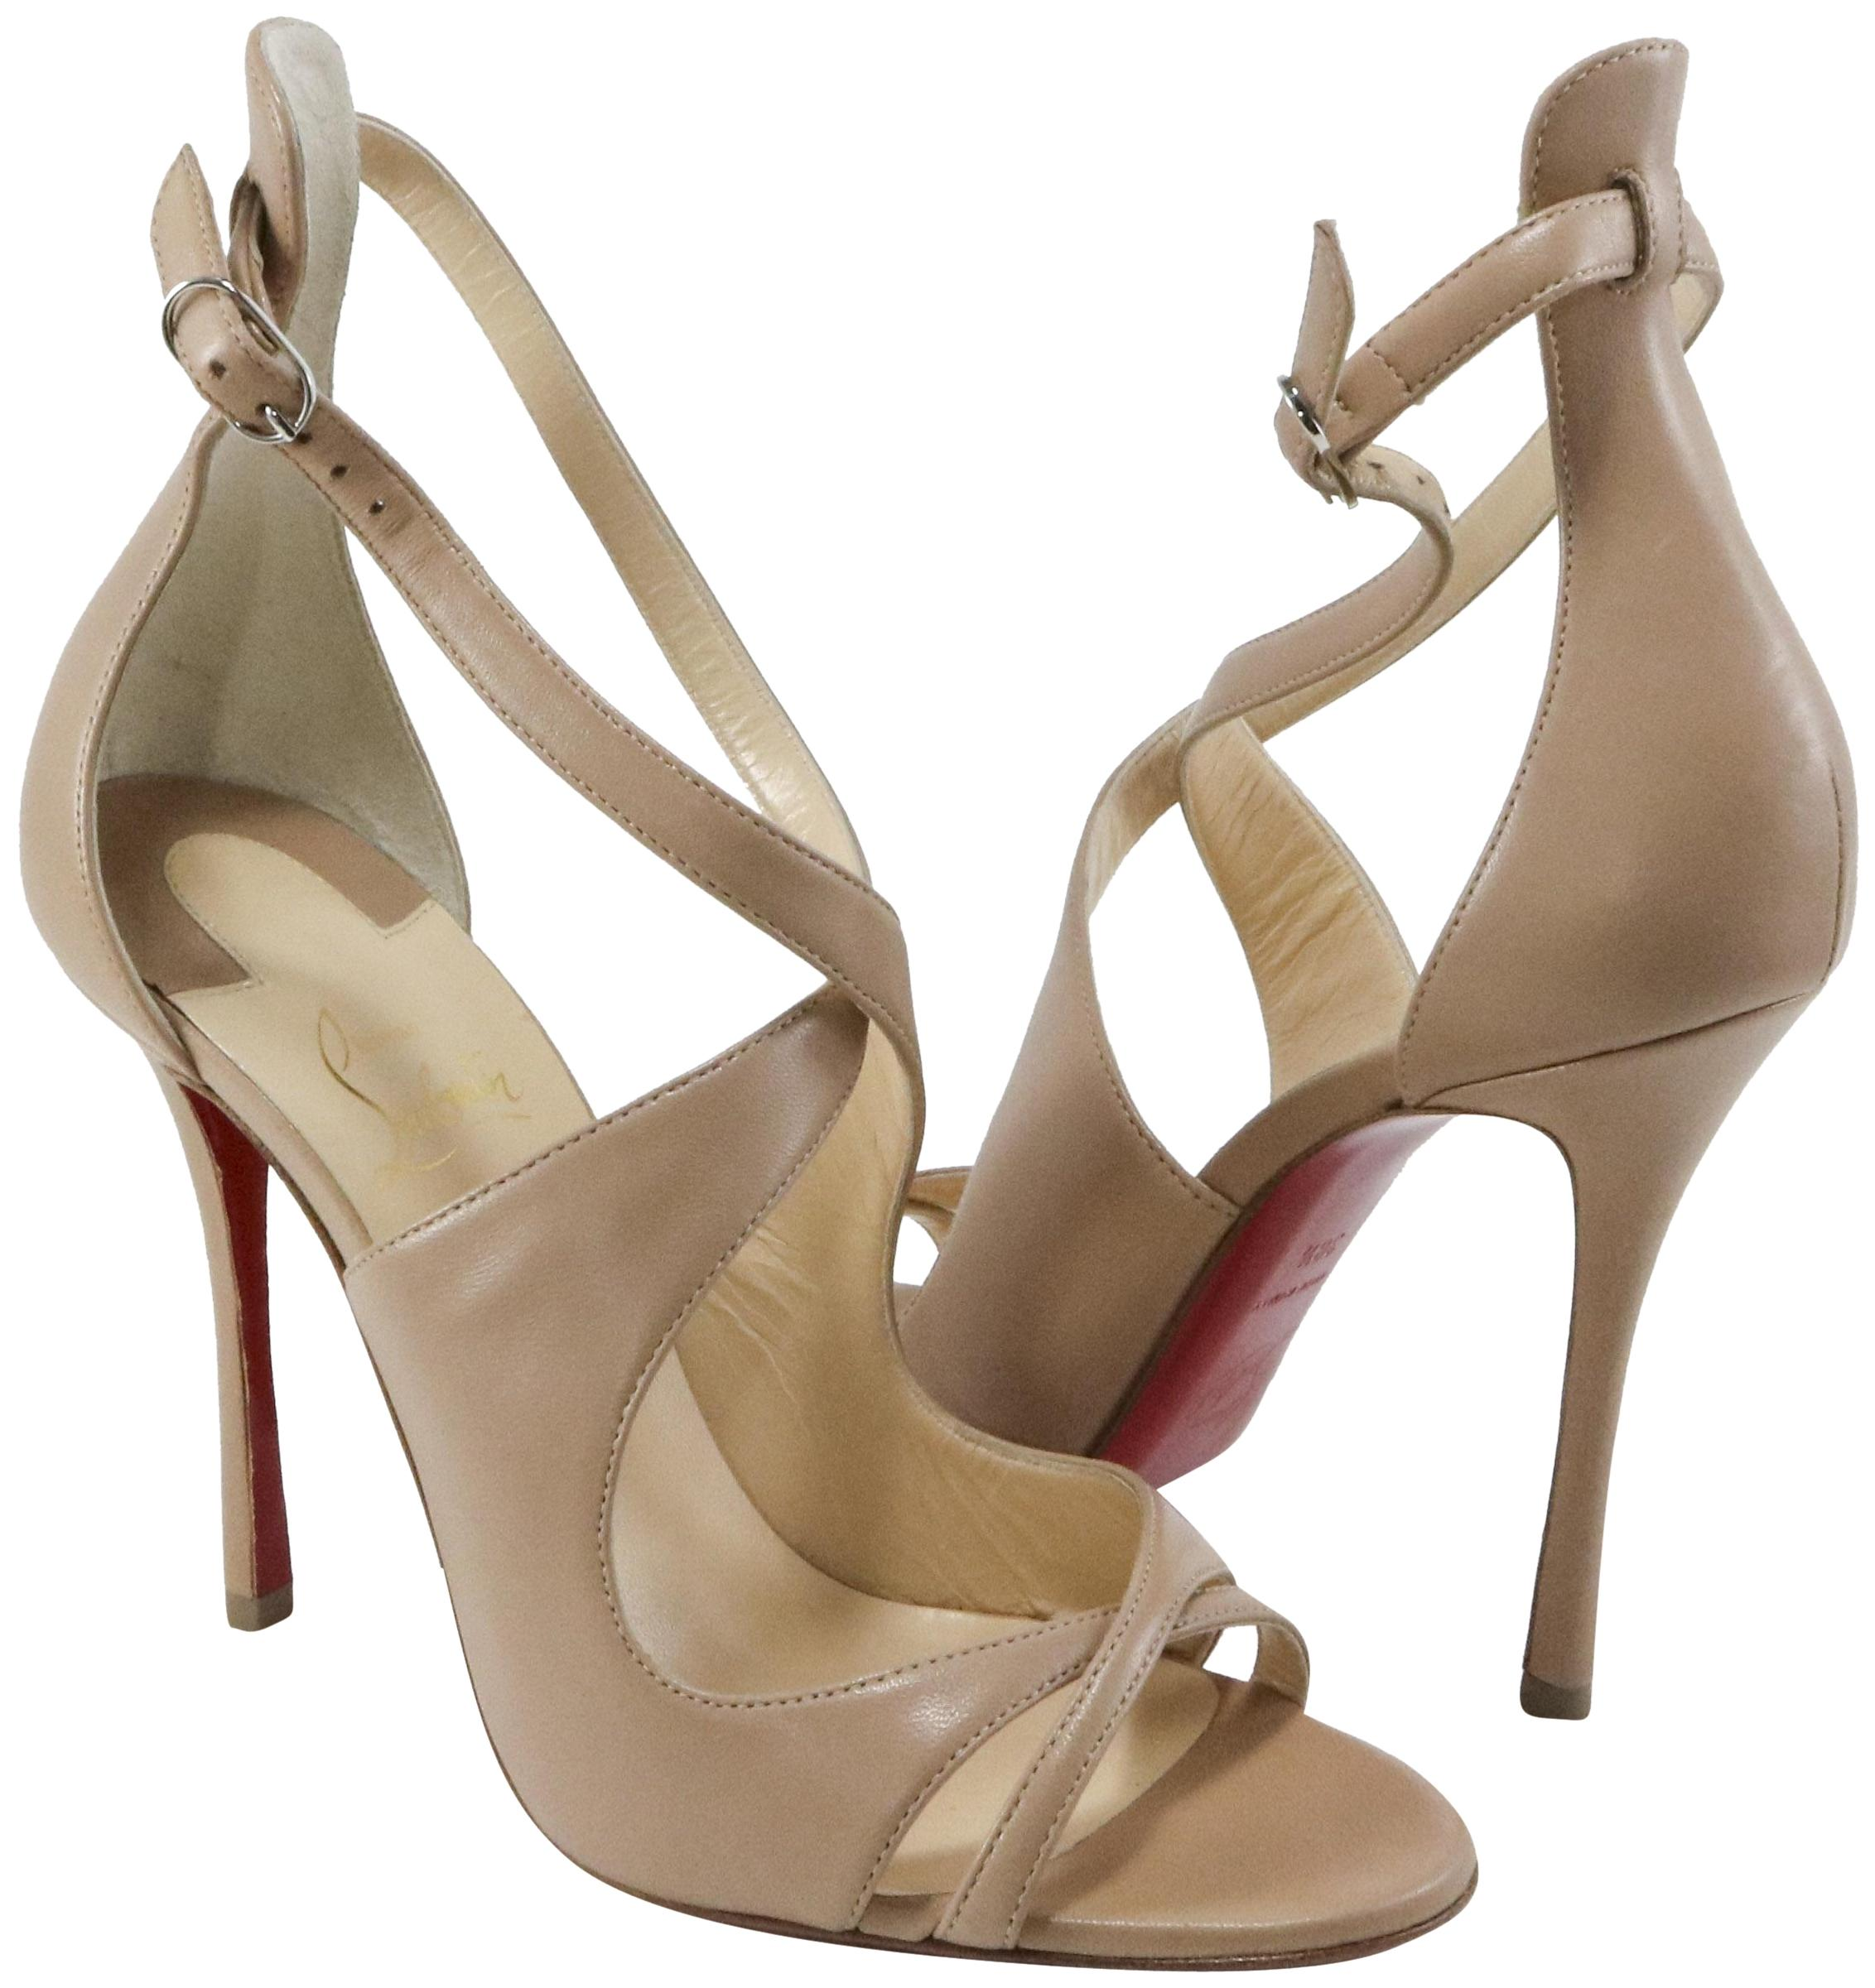 competitive price 2d87a 14c68 Christian Louboutin Nude Nude Nude Malefissima 100mm Strappy ...